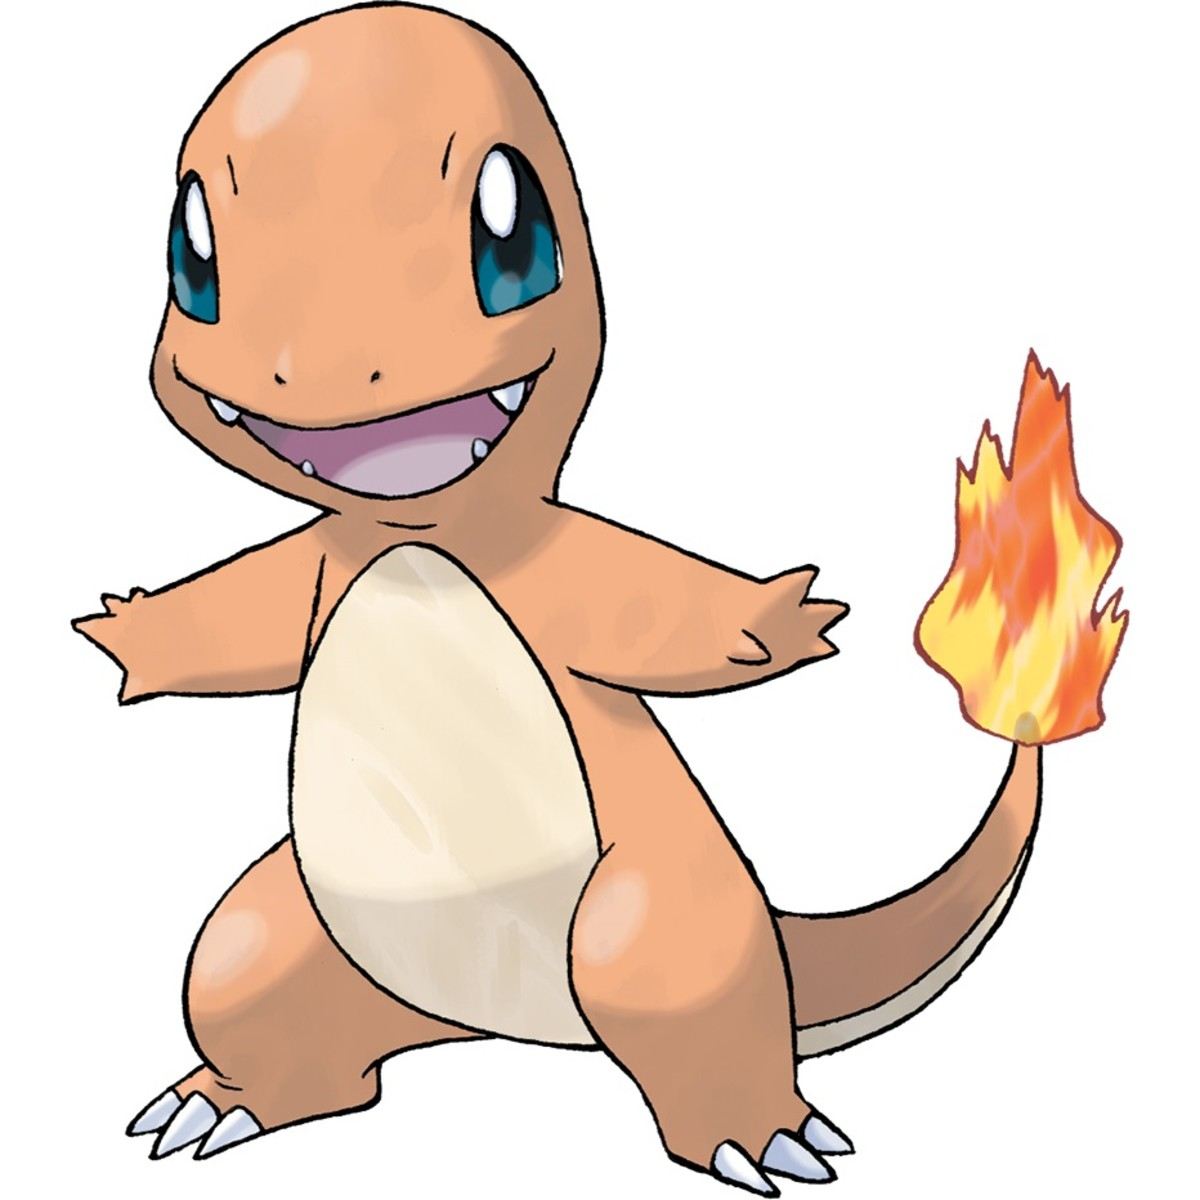 Nicknames for Charmander